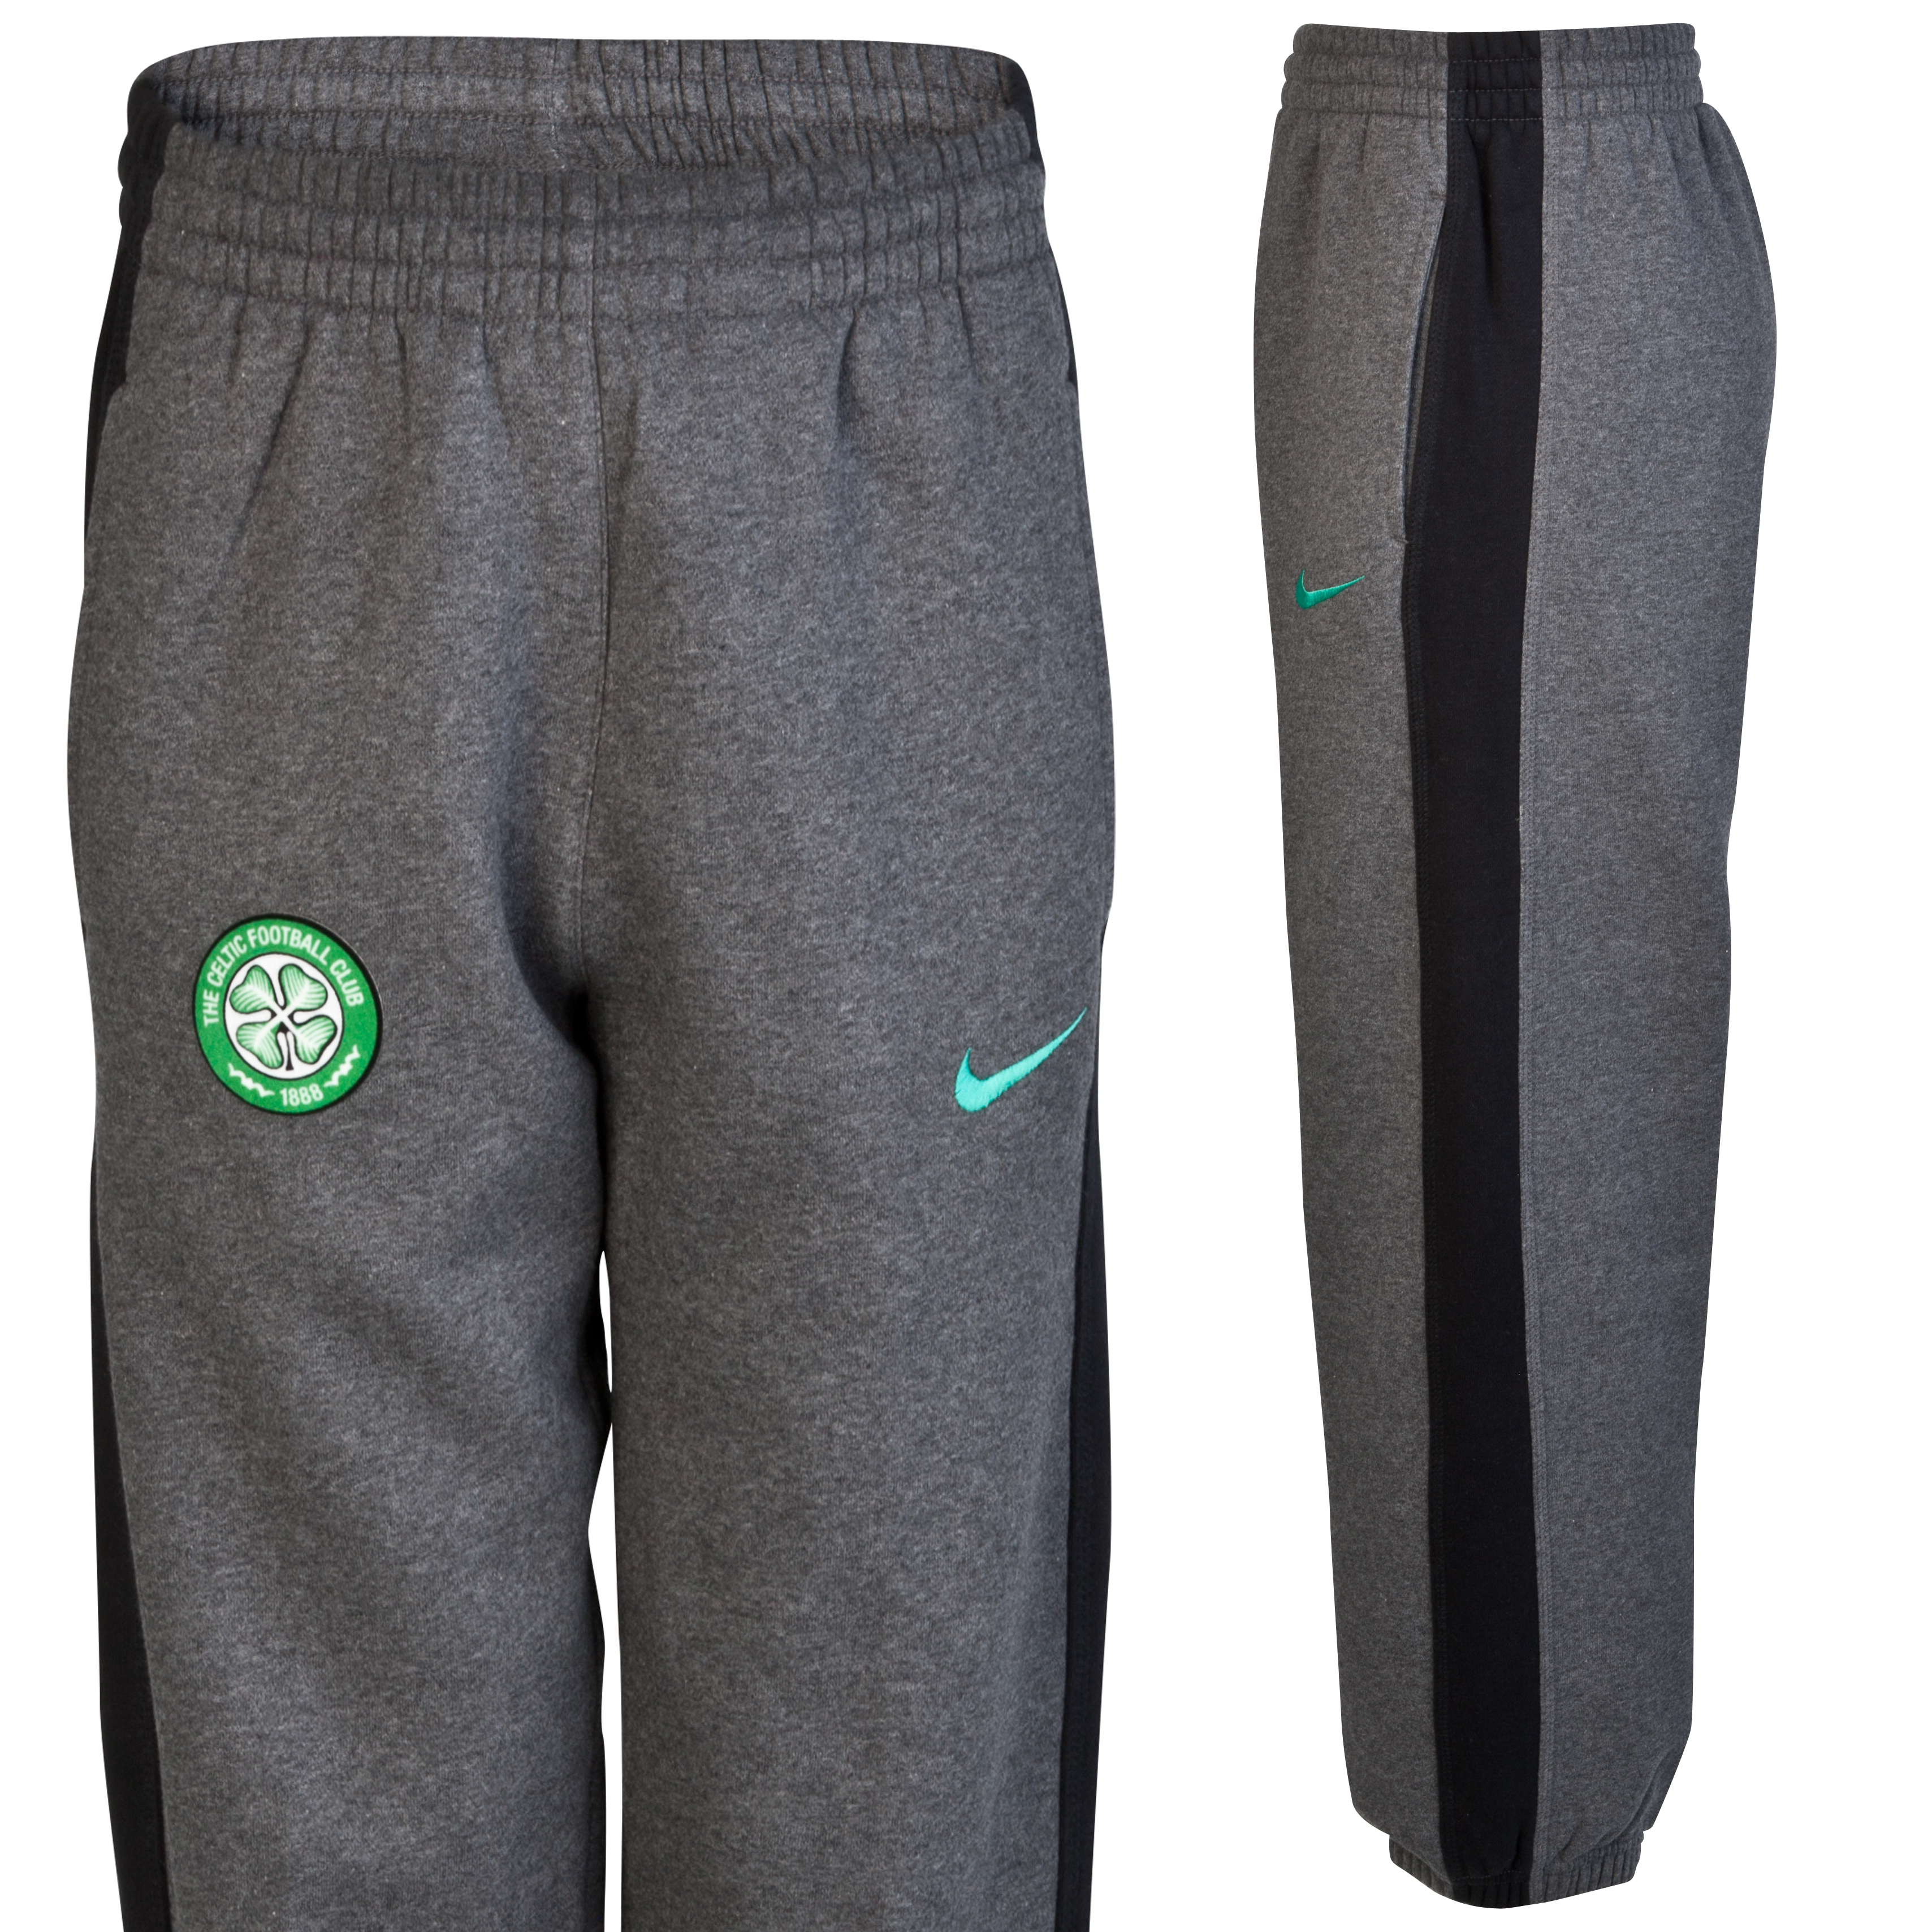 Celtic Cuffed Pant - Dark Grey Heather - Youths